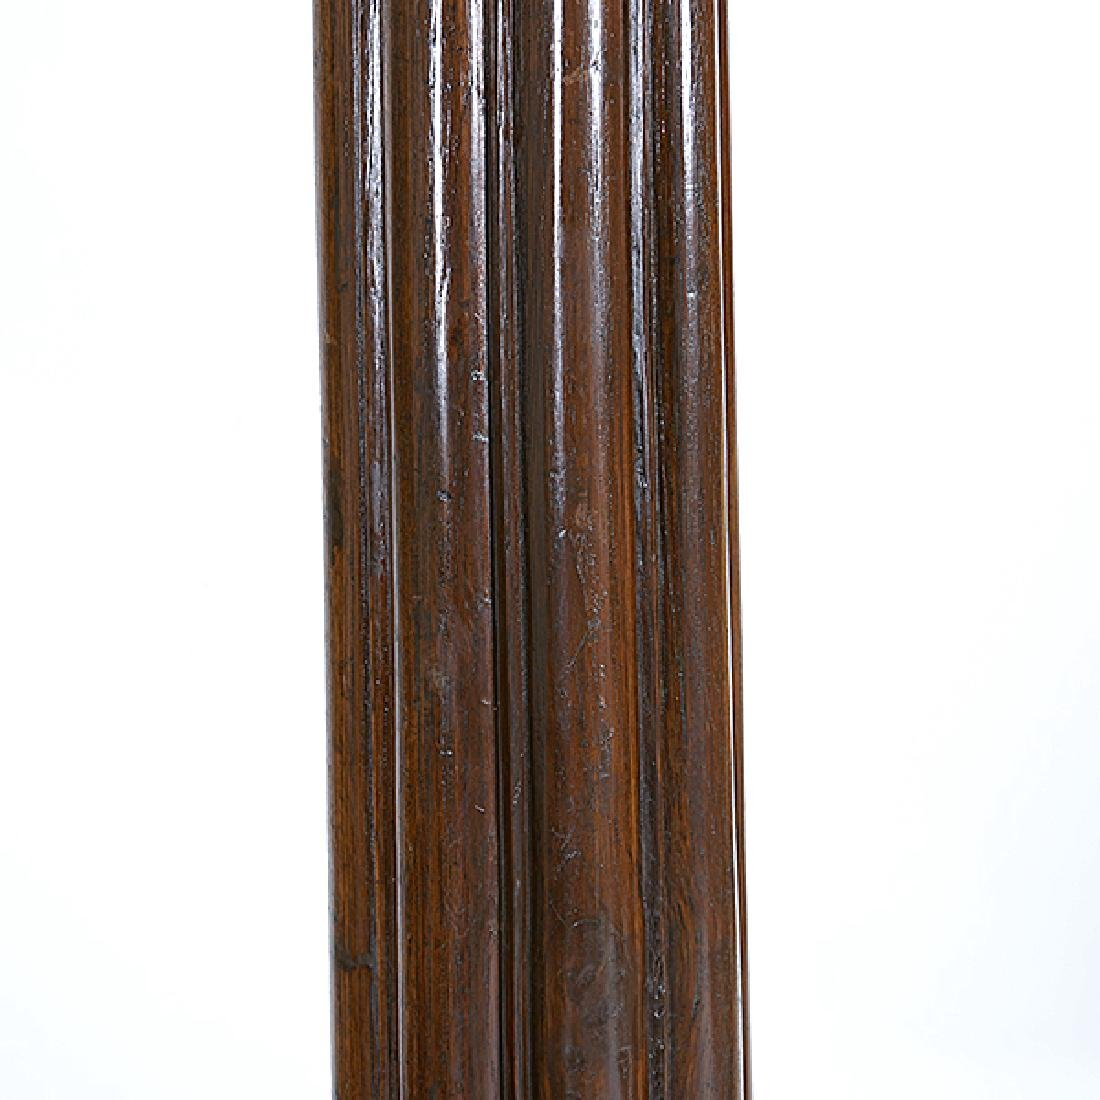 Pair of Anglo Indian Teak Fluted Columns - 3